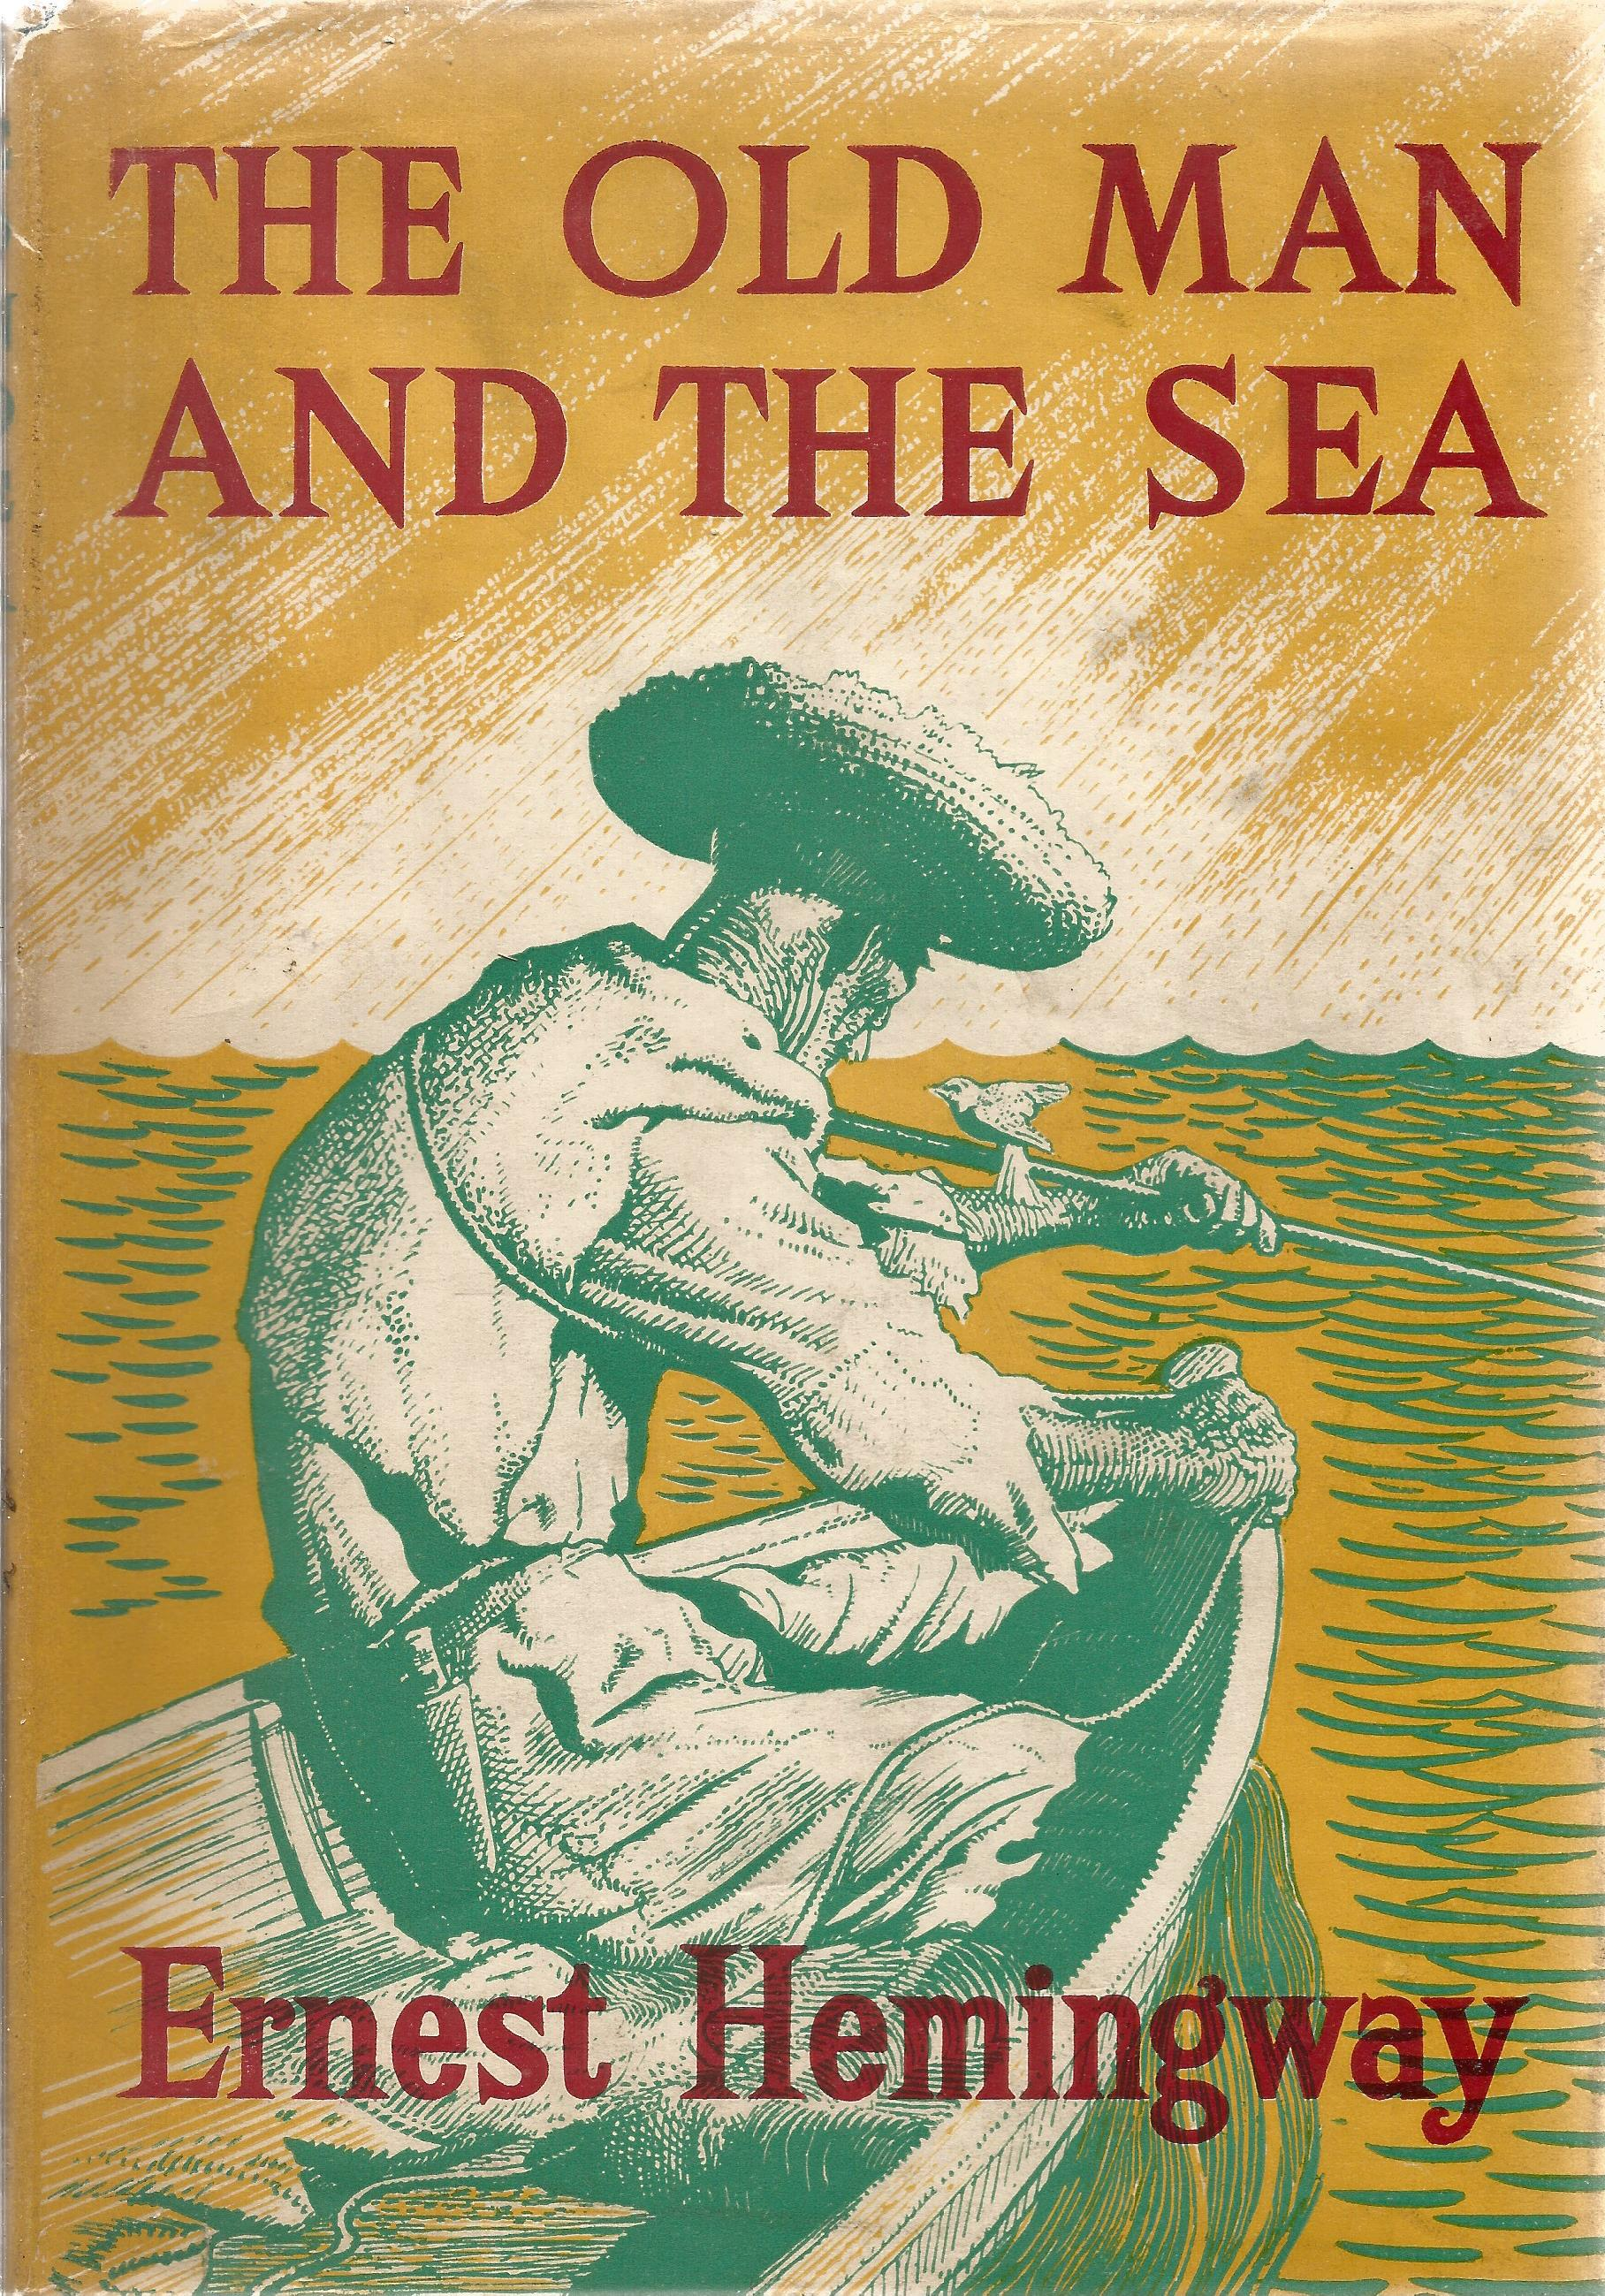 Hardback Book The Old Man and the Sea by Ernest Hemingway 1953 First Illustrated Edition